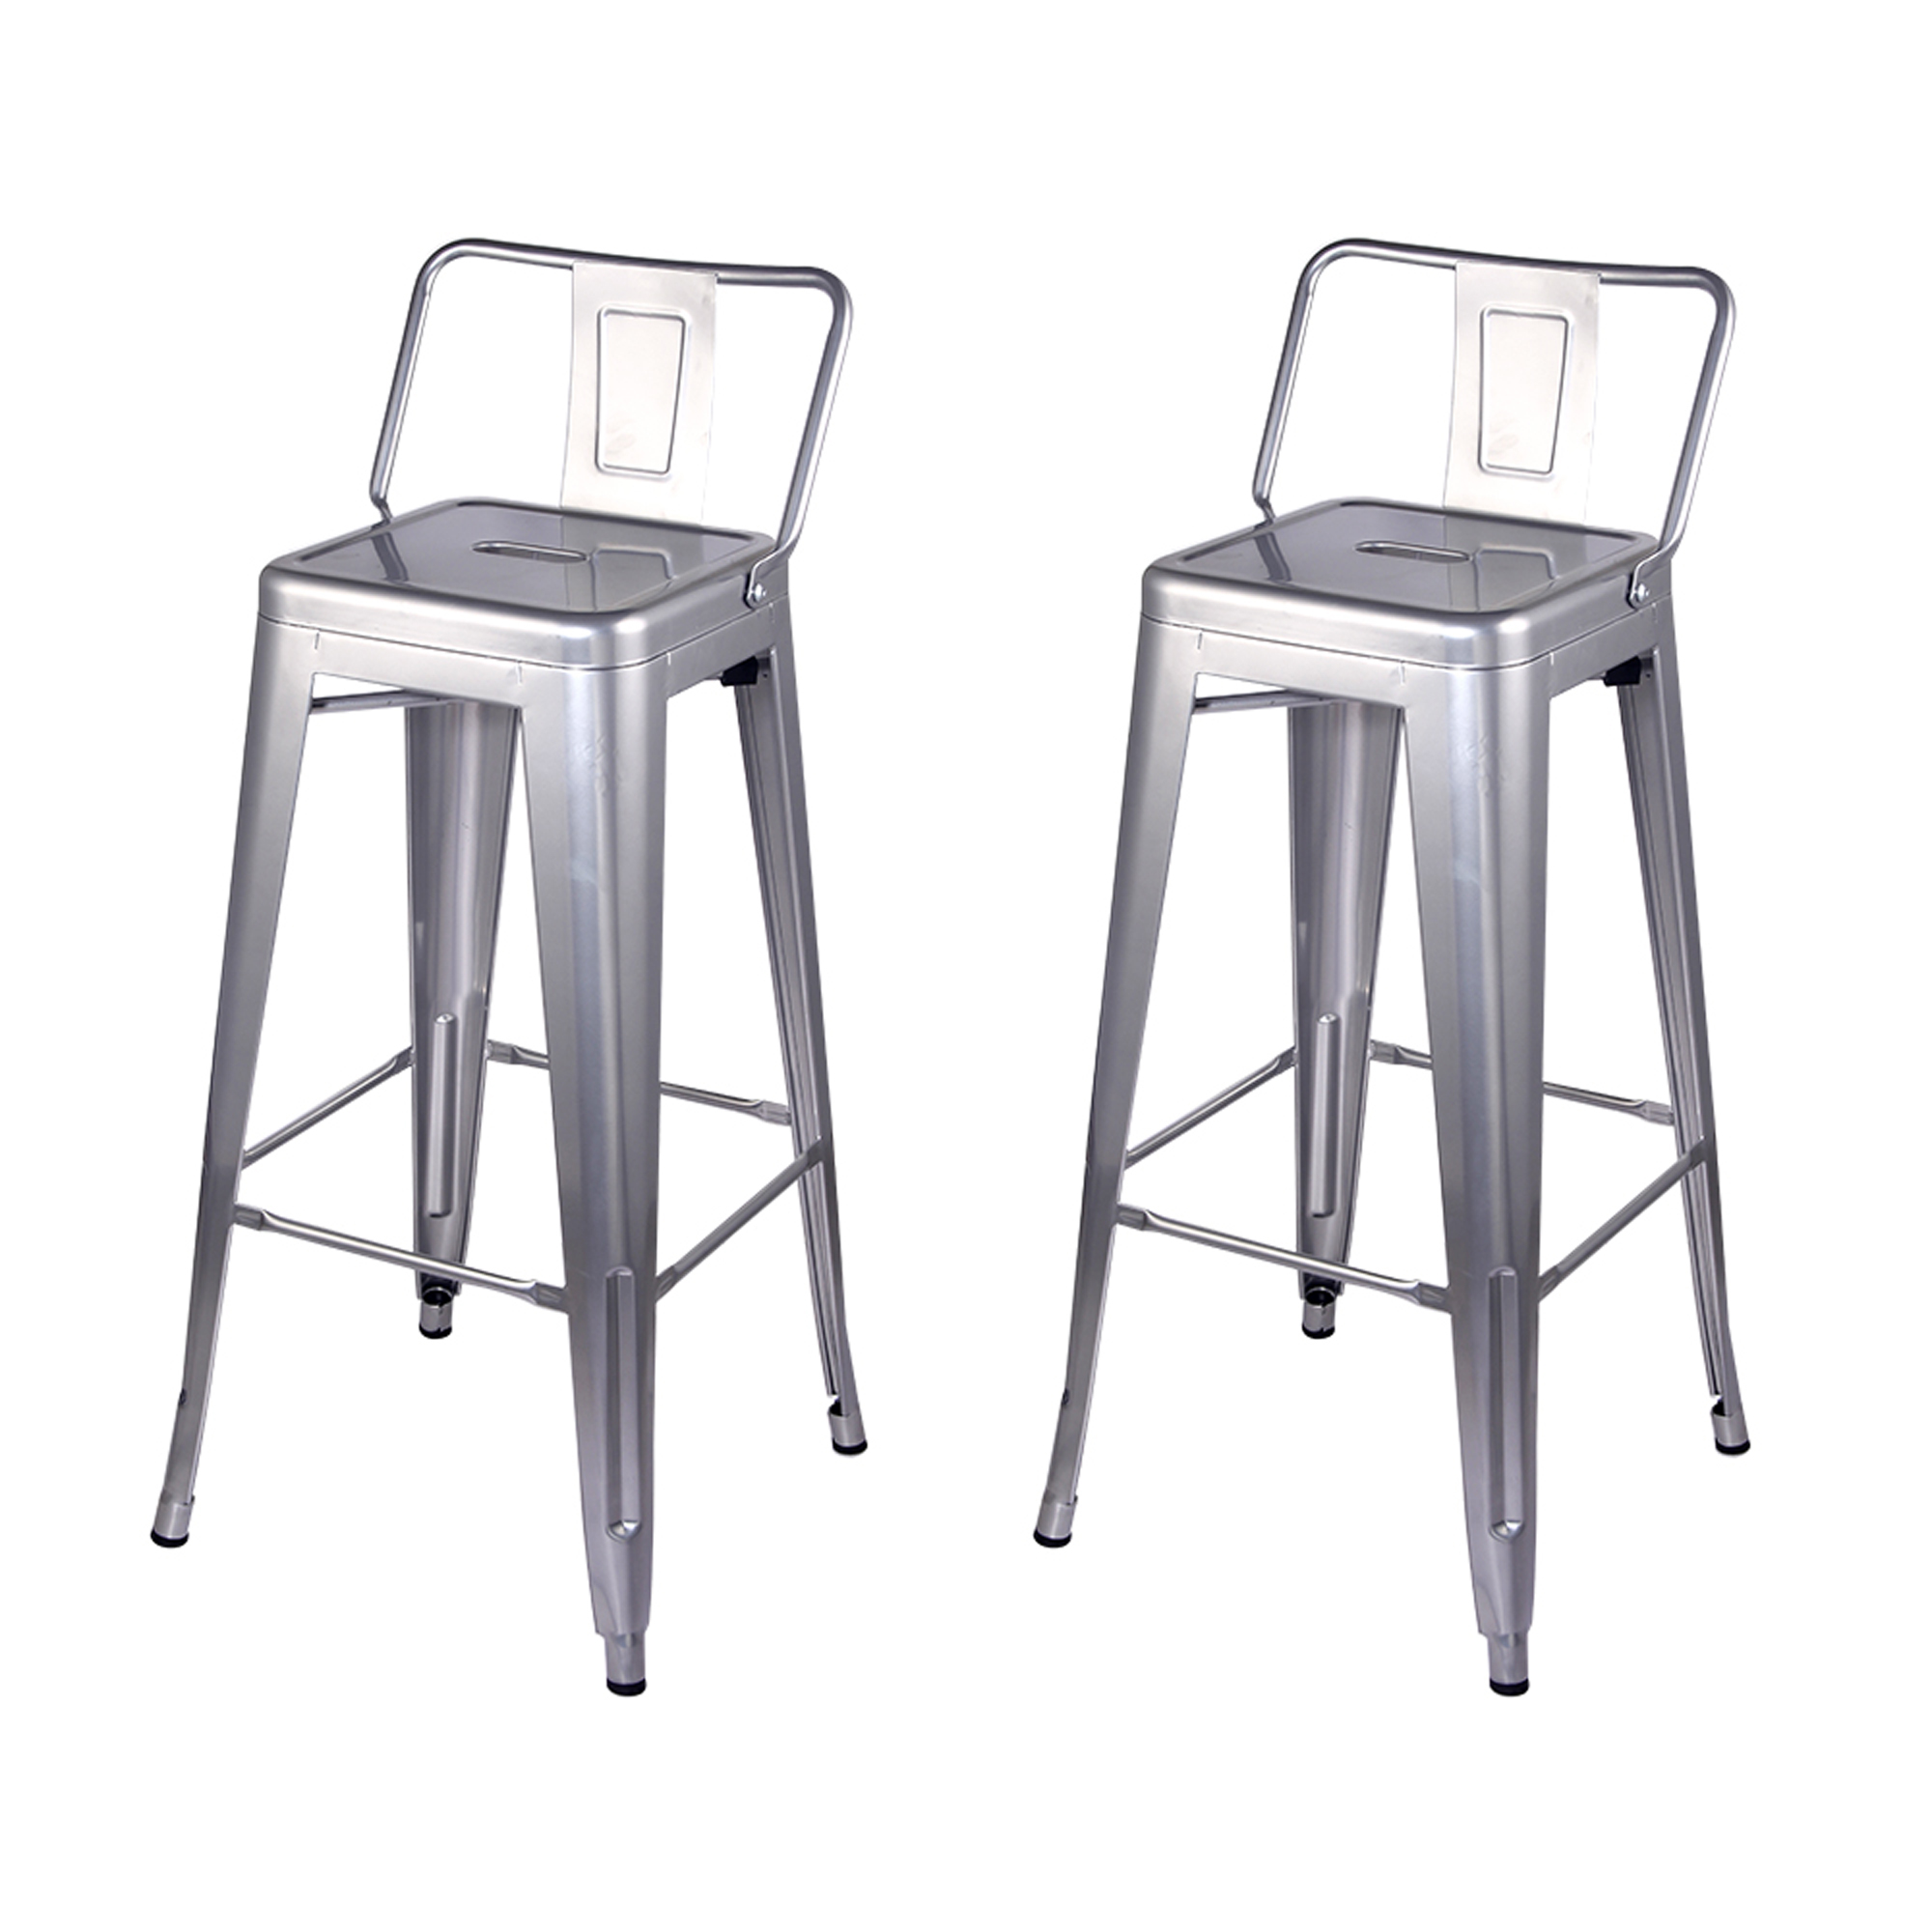 1-Pack Black GIA 30-Inch Low-Back Bar Height Stool